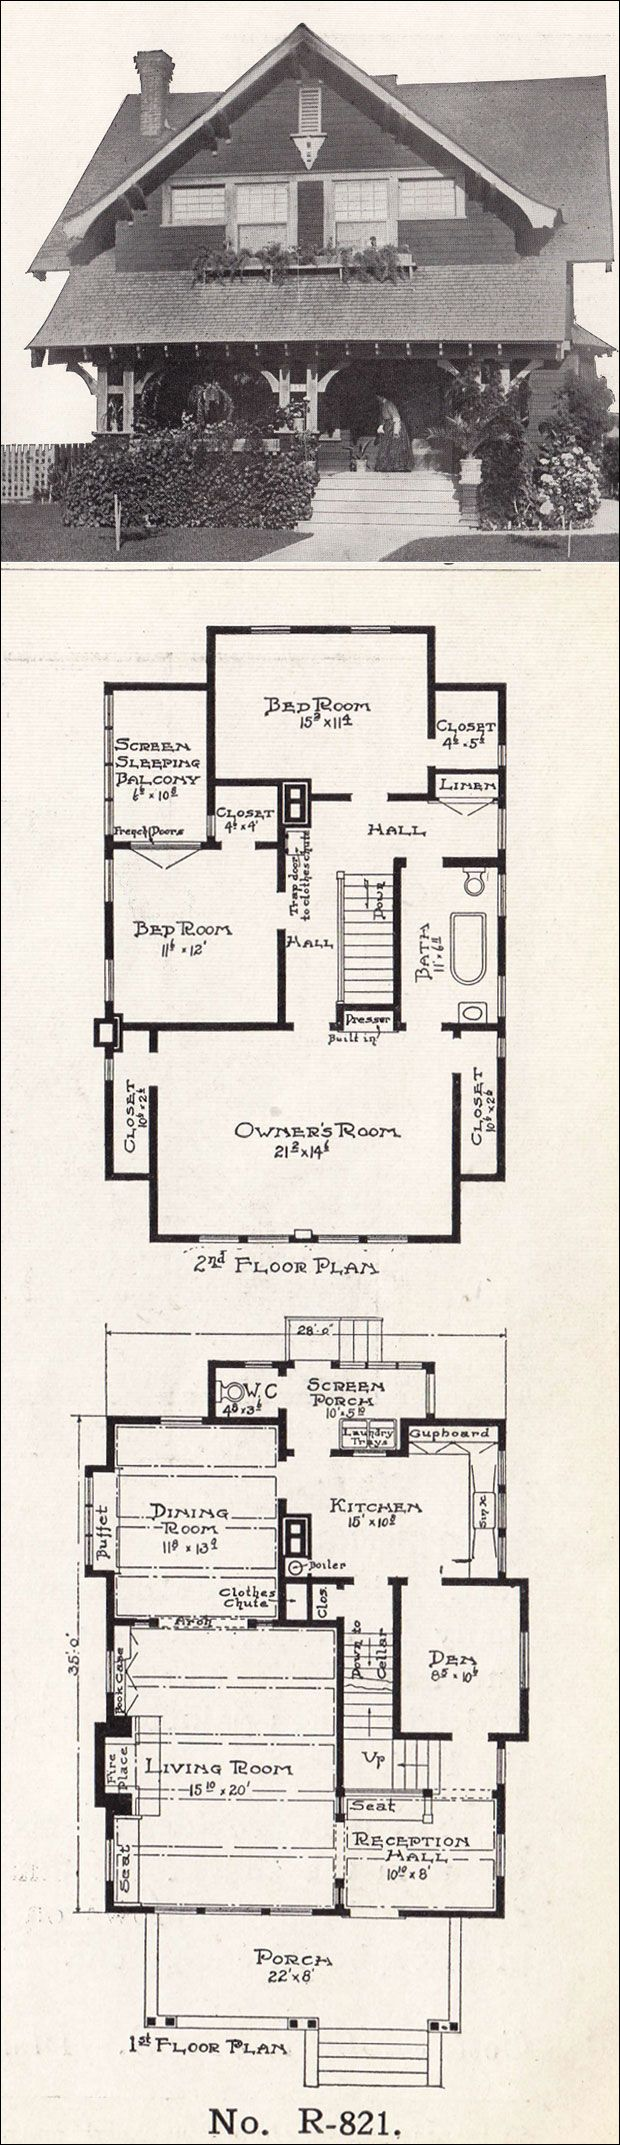 An awesome original bungalow style floorplan.  Wouldn't take much to update it for today.